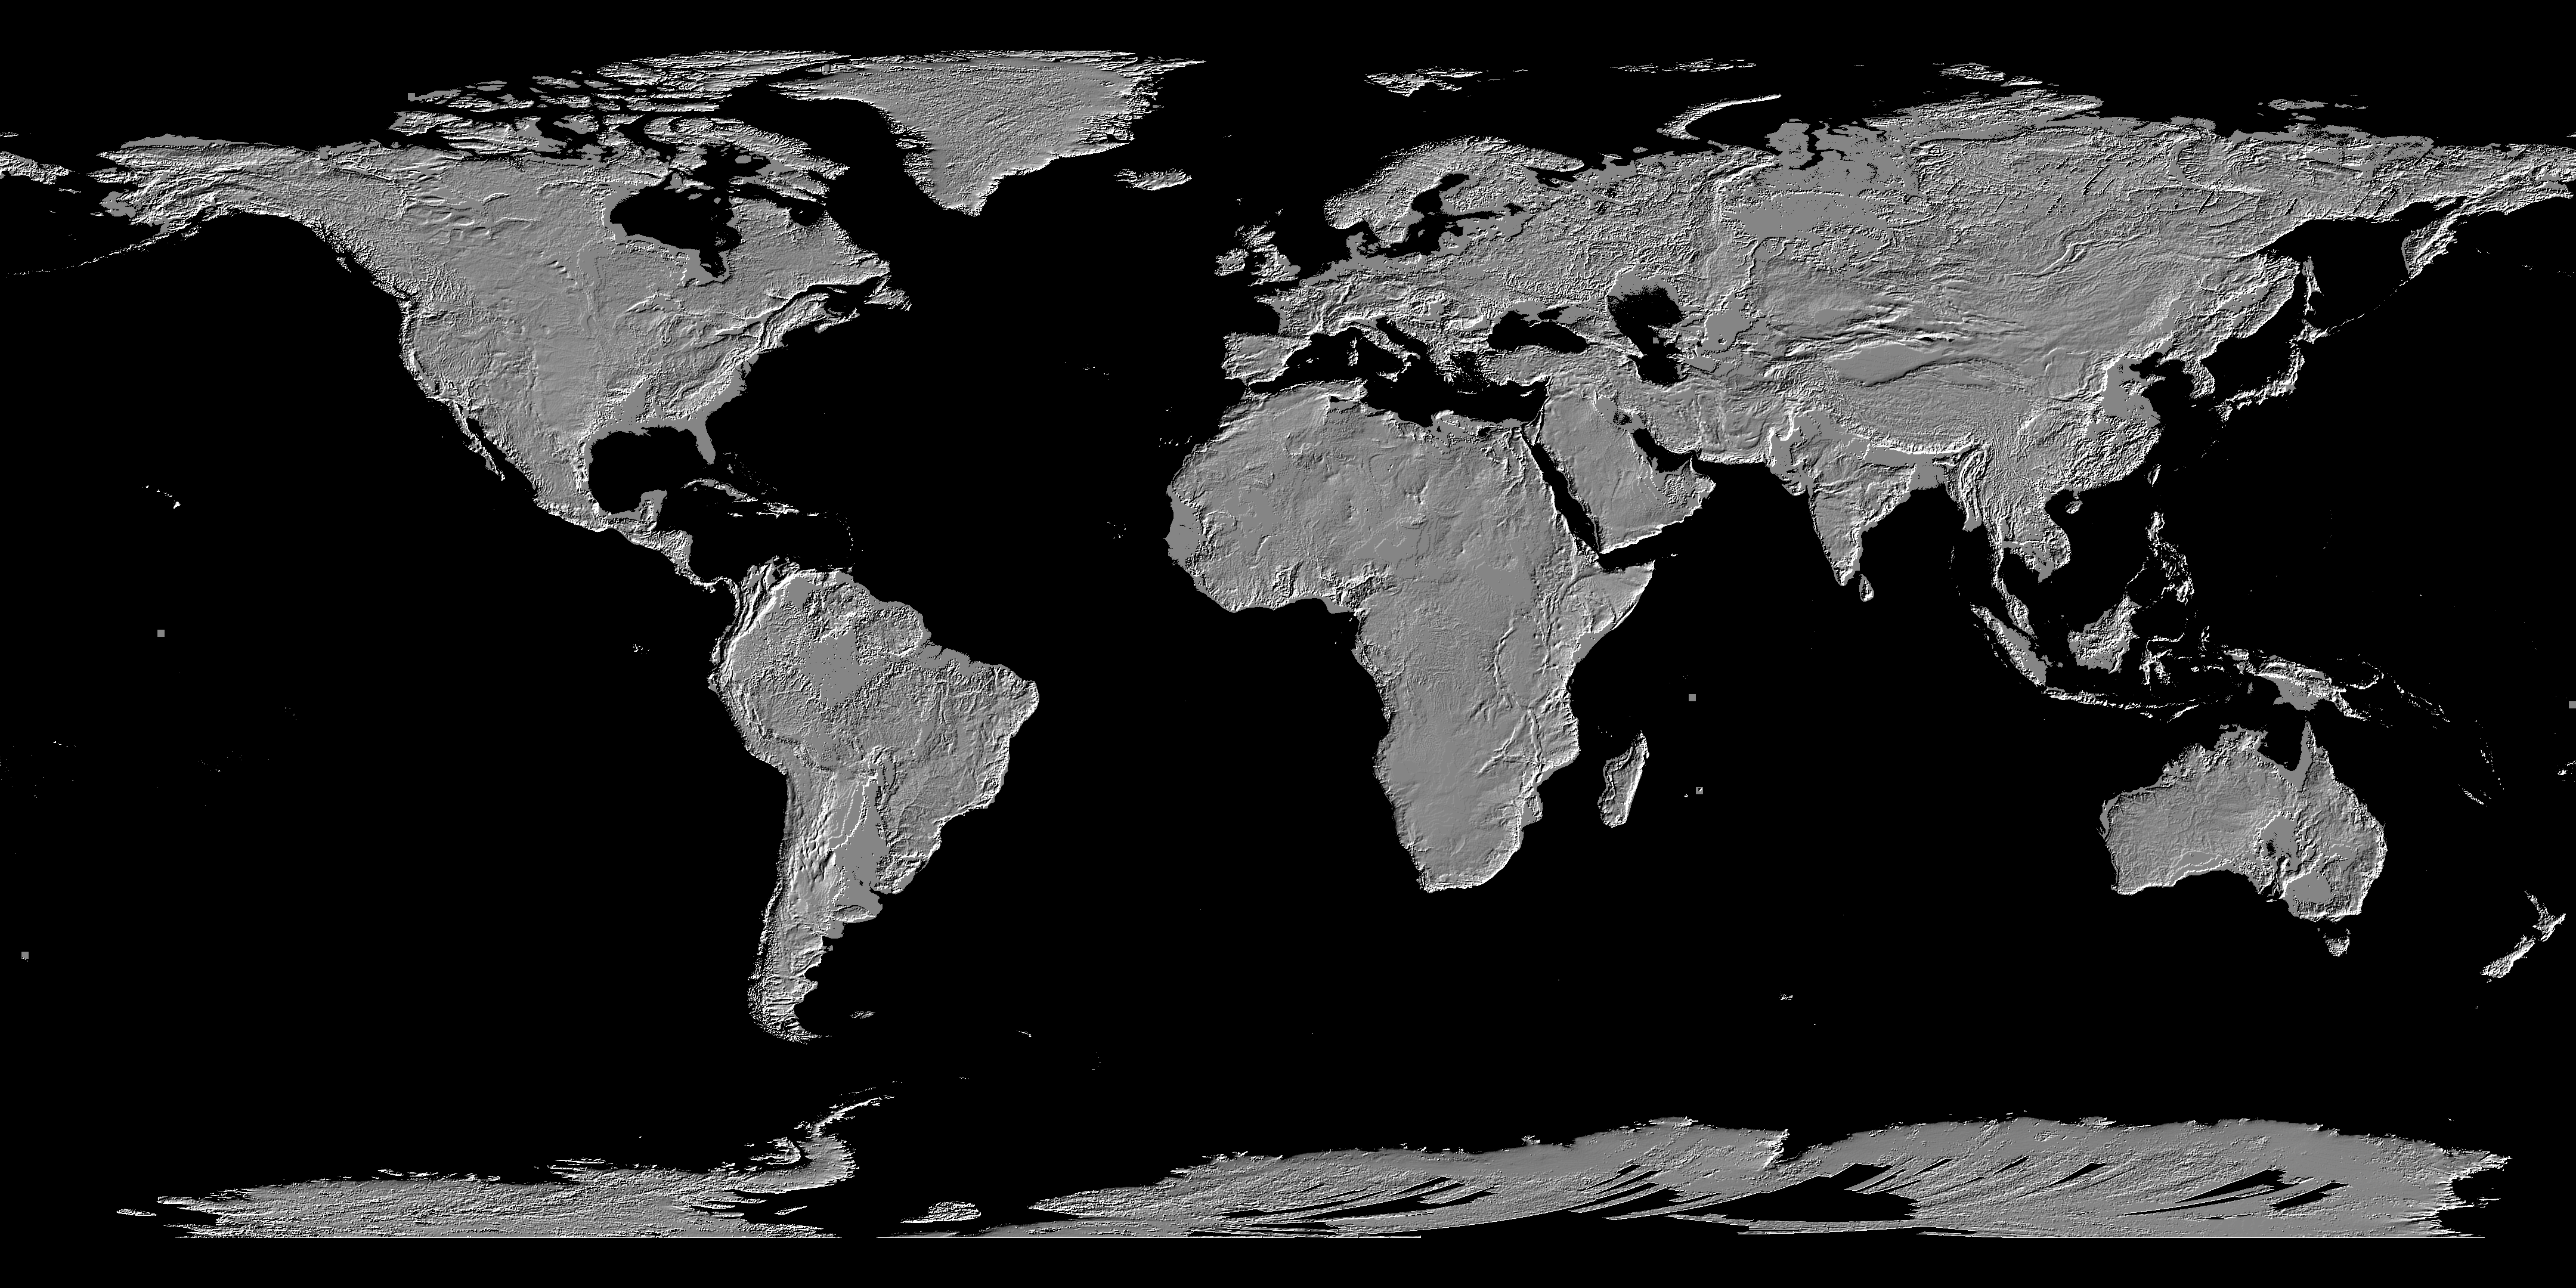 ASTER Global Digital Elevation Map - Grayscale height map us